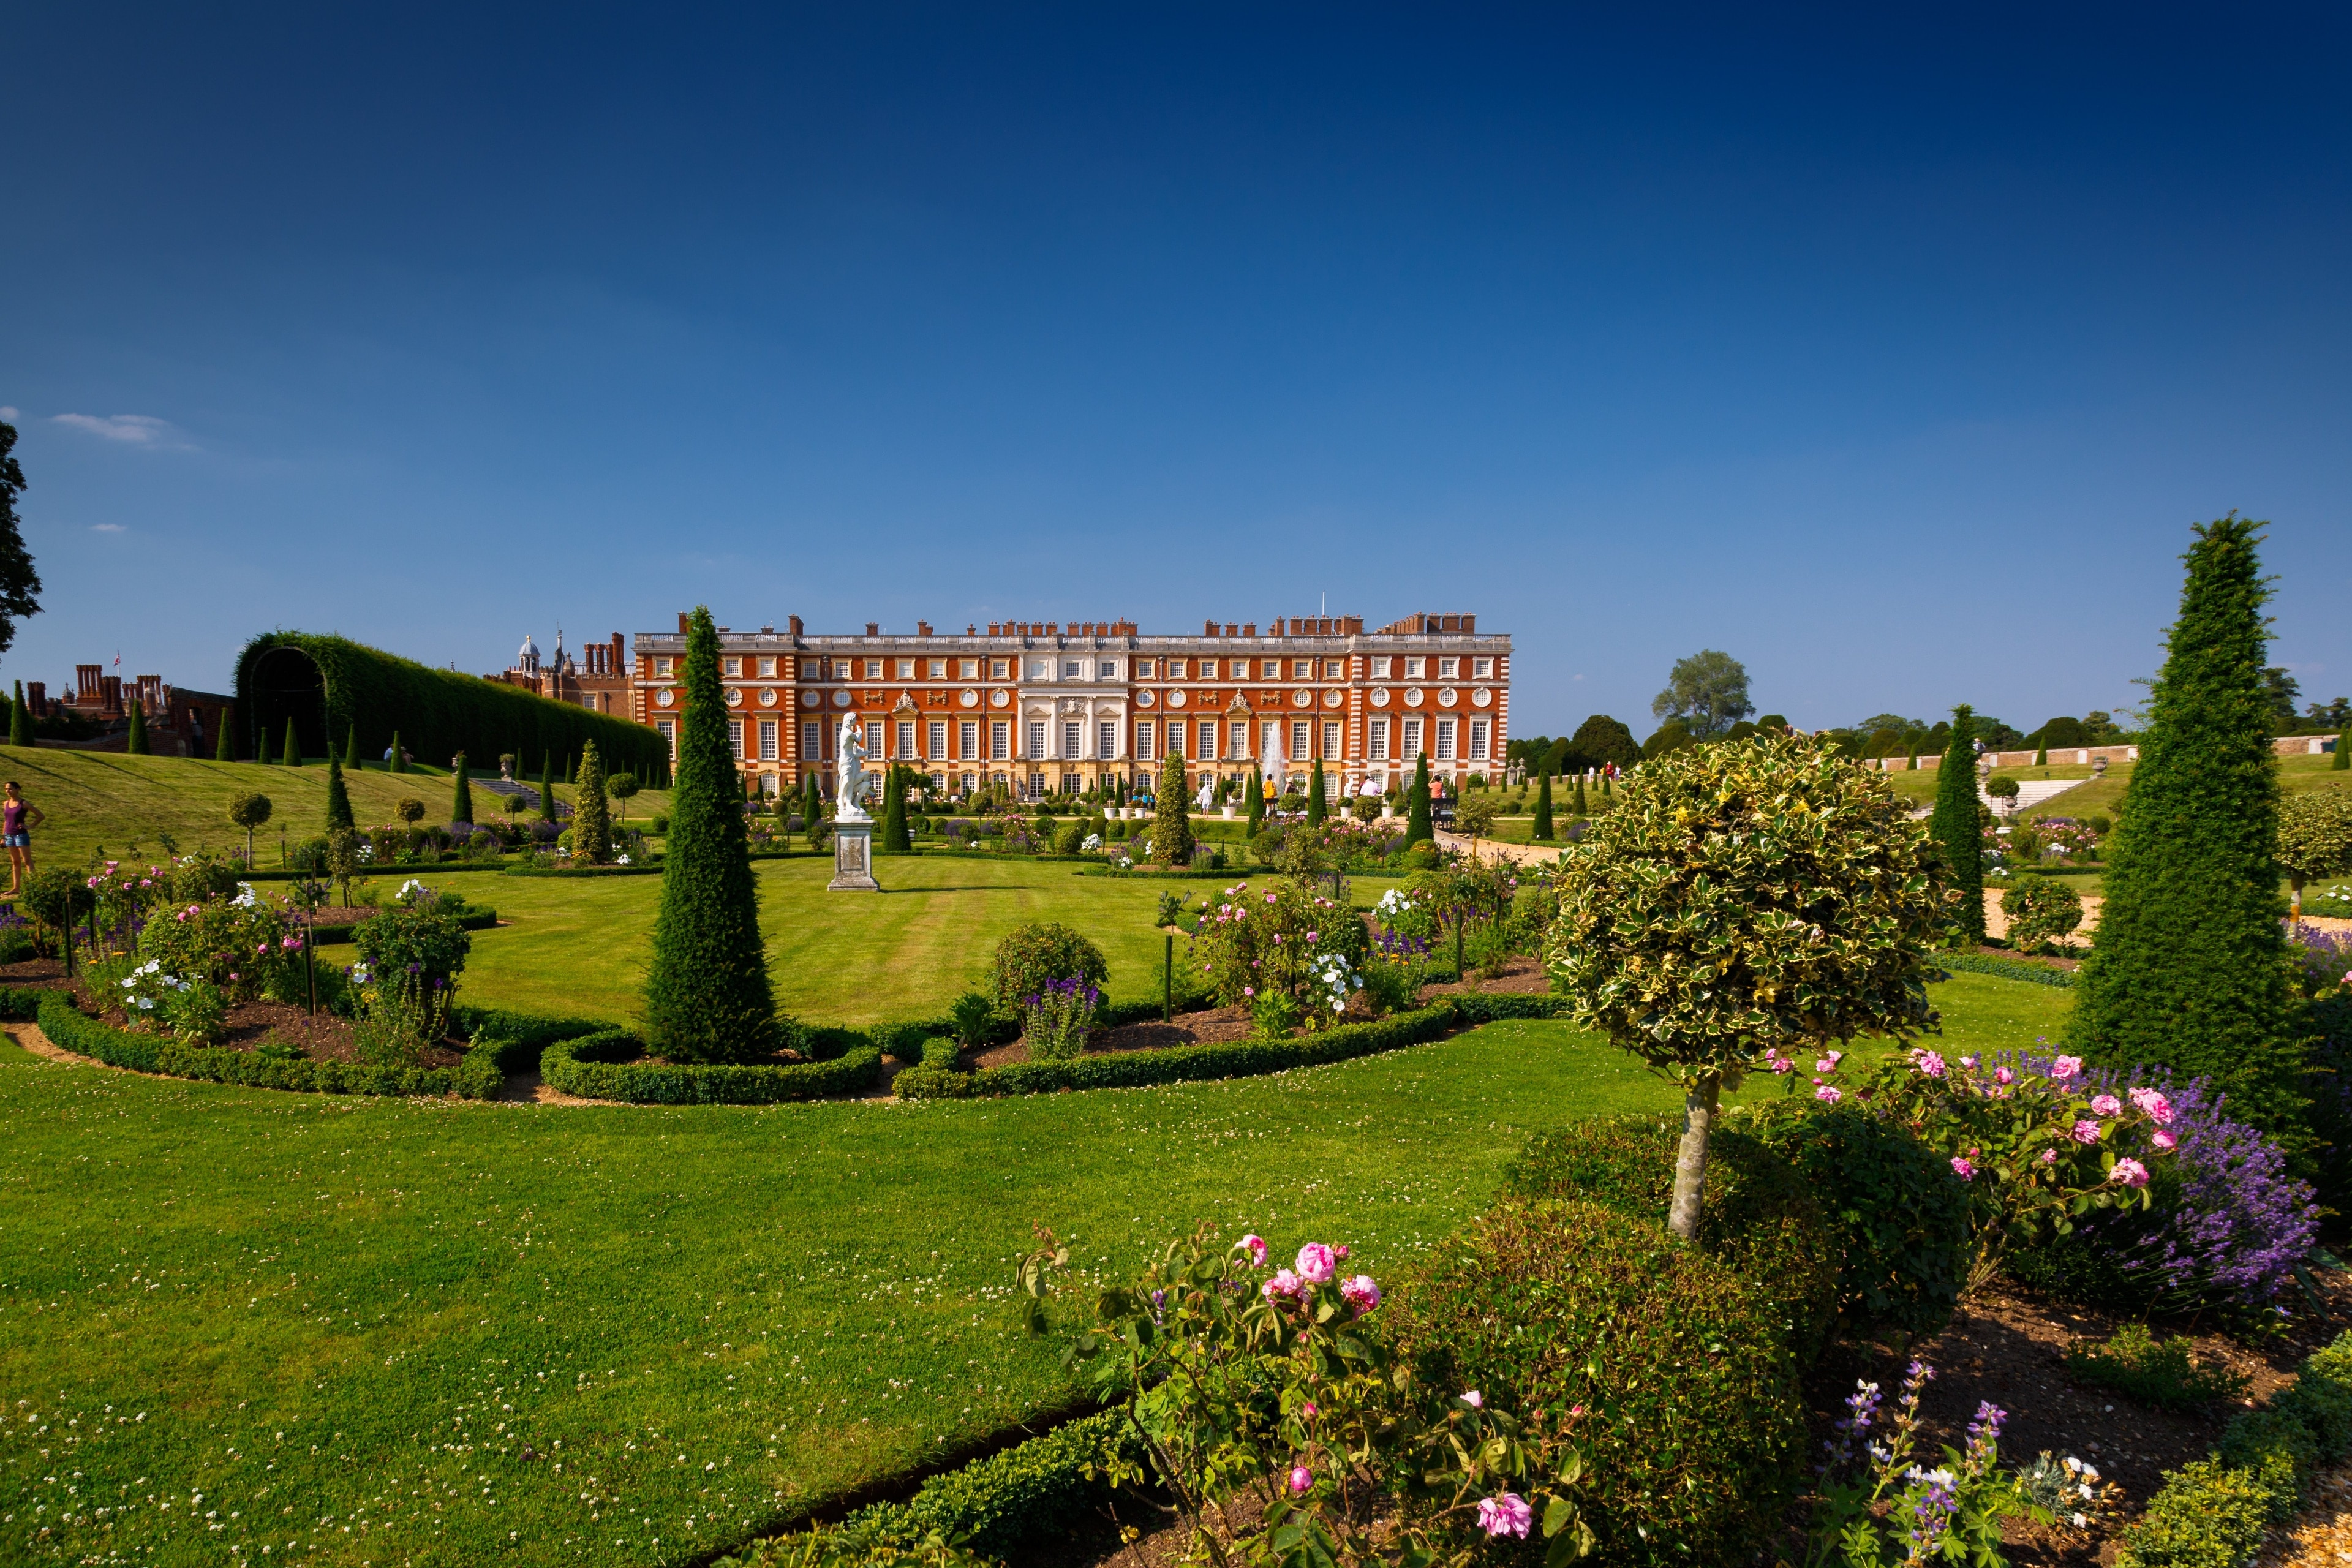 You can browse the exhibits at Hampton Court Palace, a museum with a story of its own, during your holiday in East Molesey. Experience the acclaimed art galleries and fascinating museums in this vibrant area.